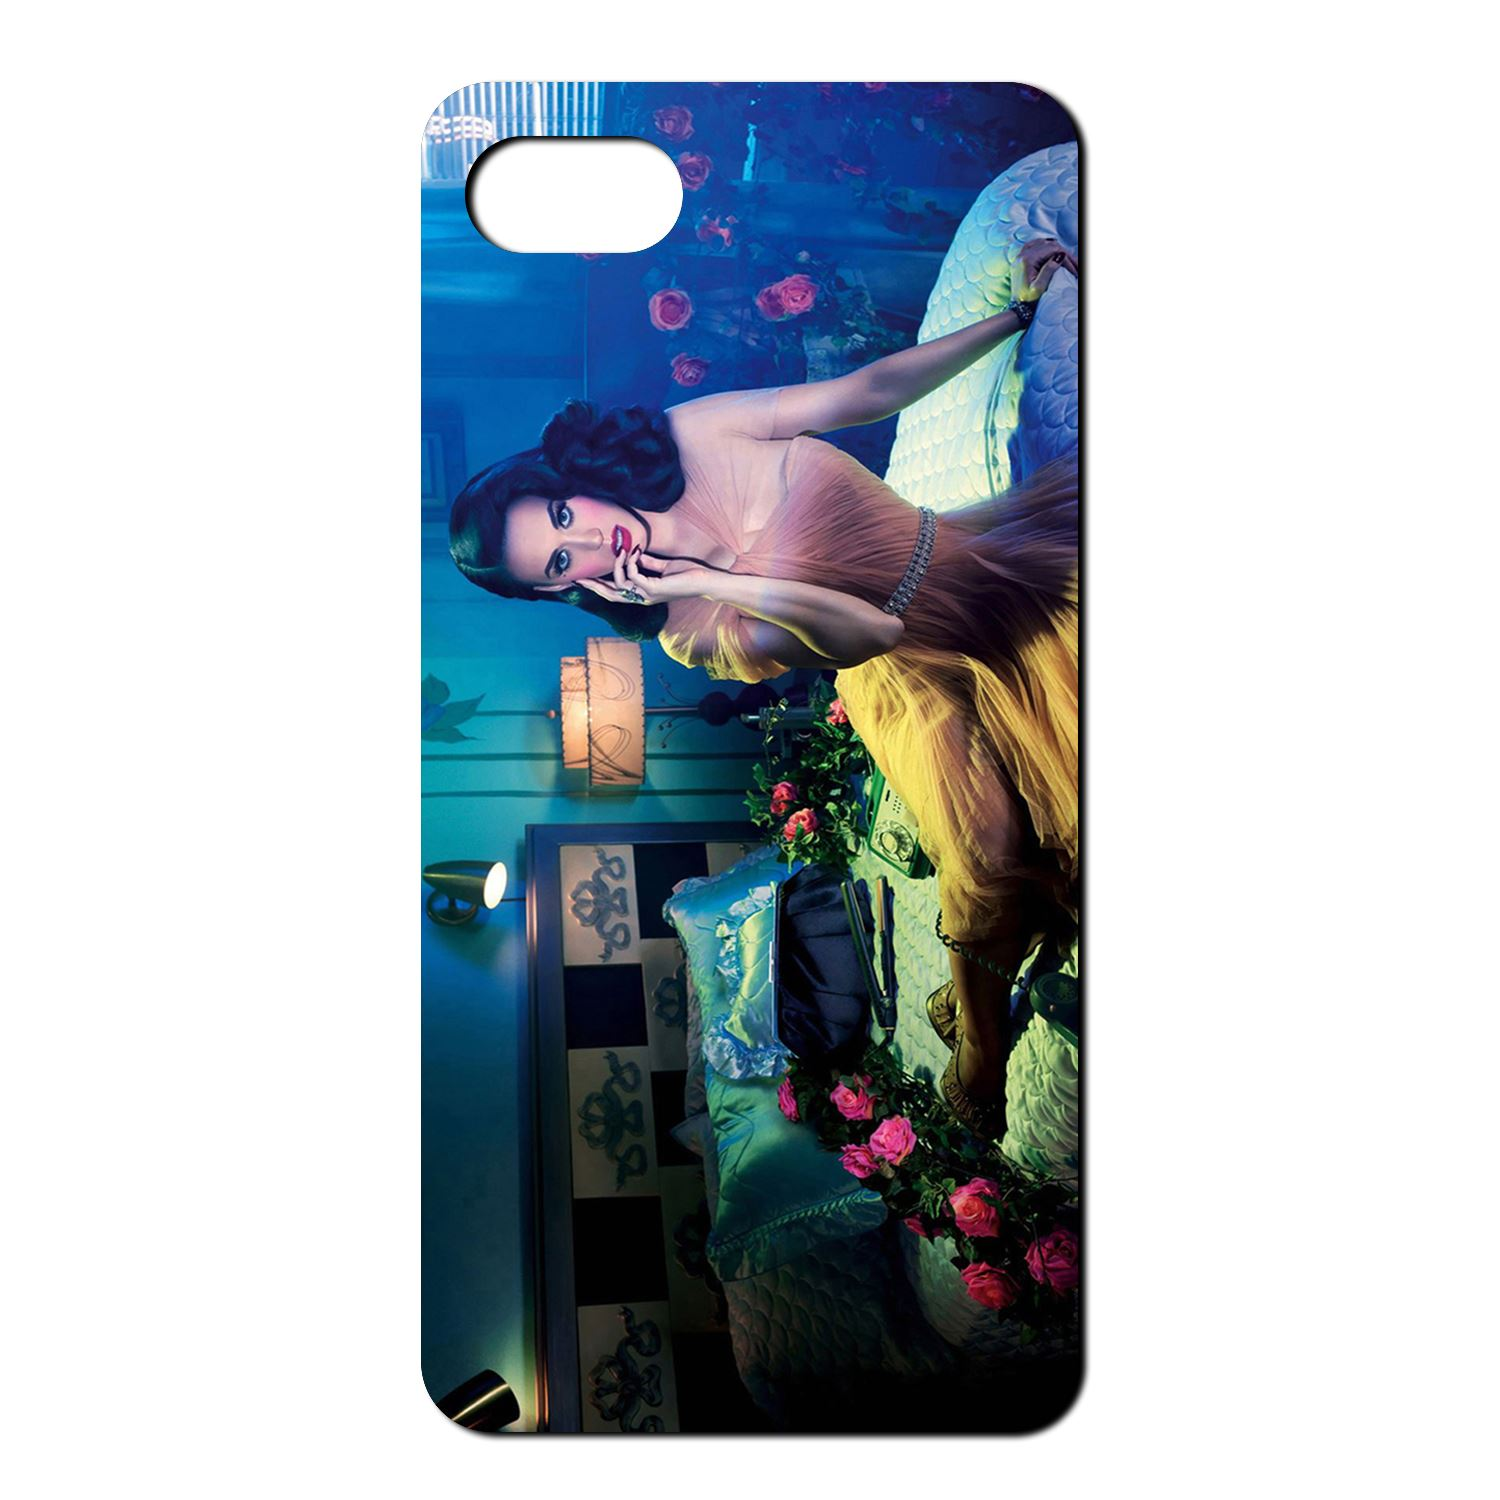 Female-Singers-Katy-Perry-amp-Rihanna-TPU-Back-Case-Cover-For-Mobile-Phone-T378